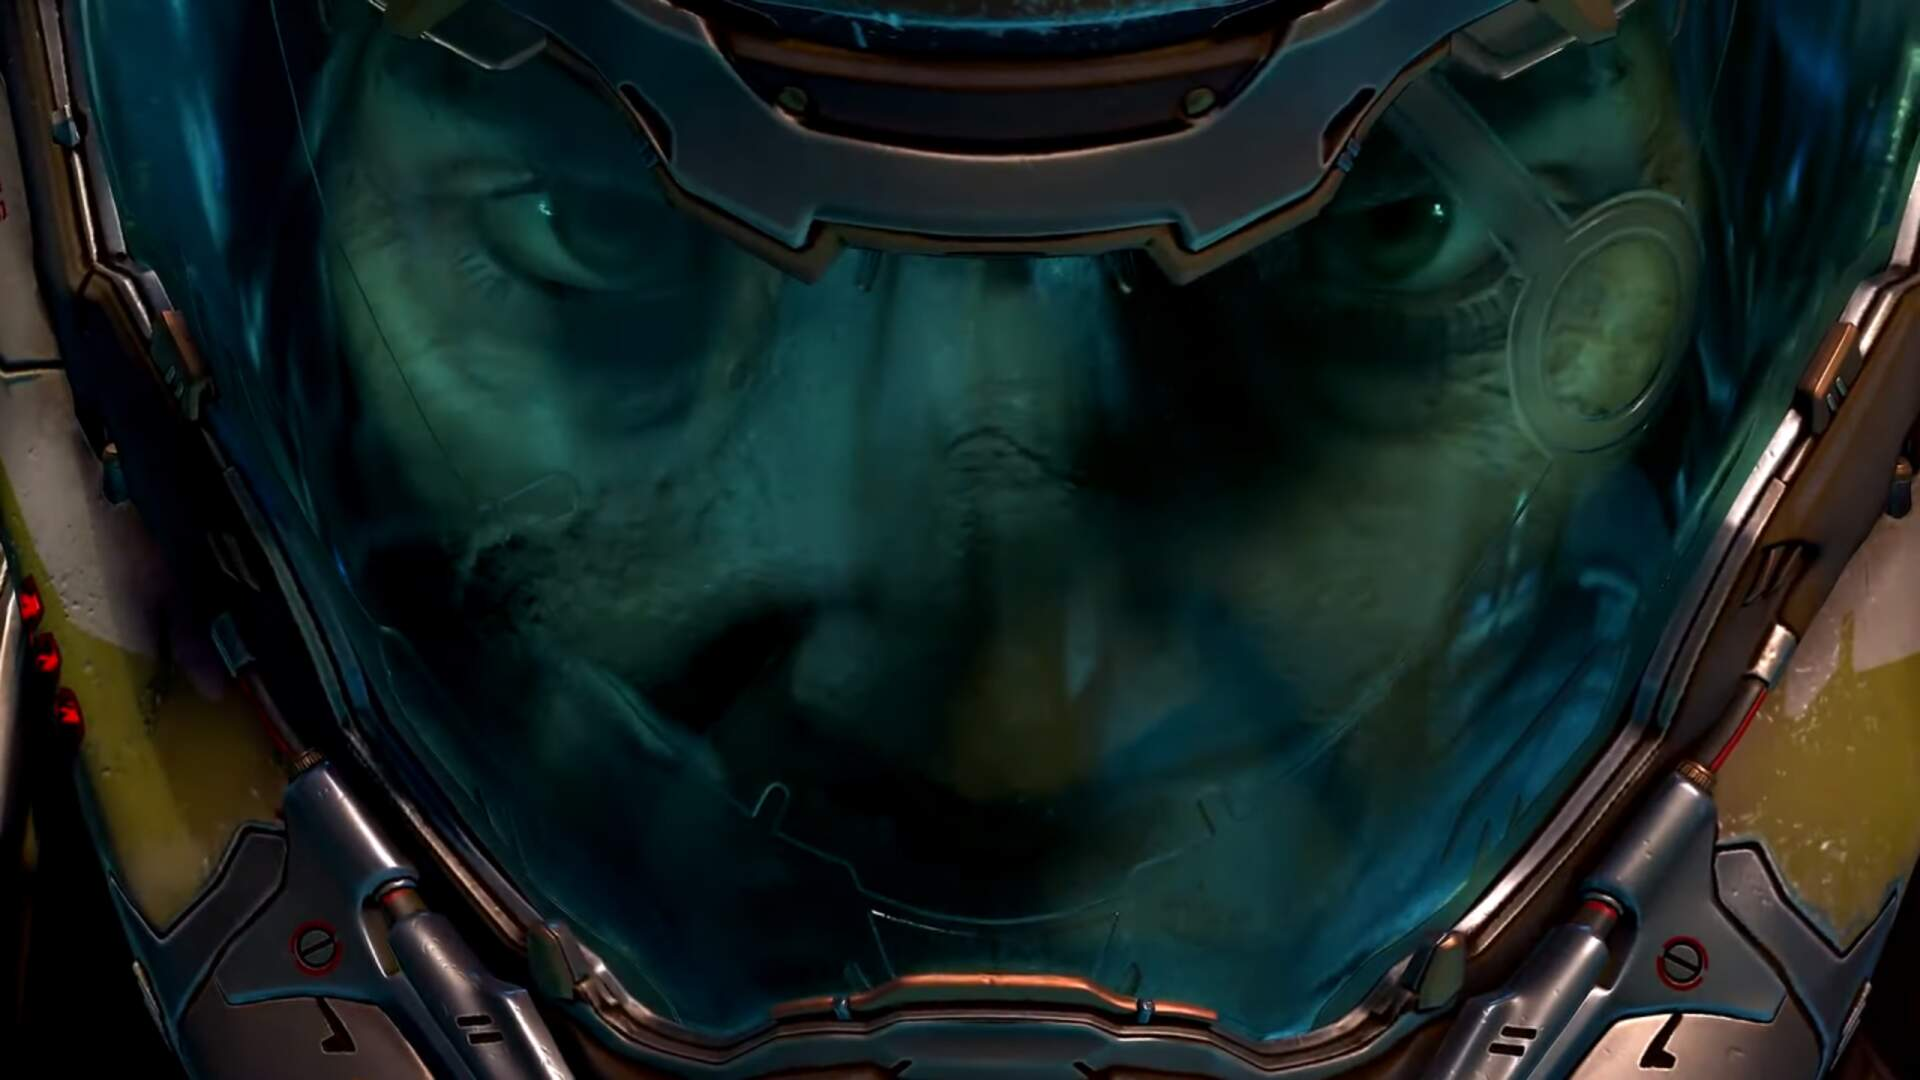 New Doom Eternal Trailer Gives Us a Glimpse of What's Under the Doom Slayer's Helmet